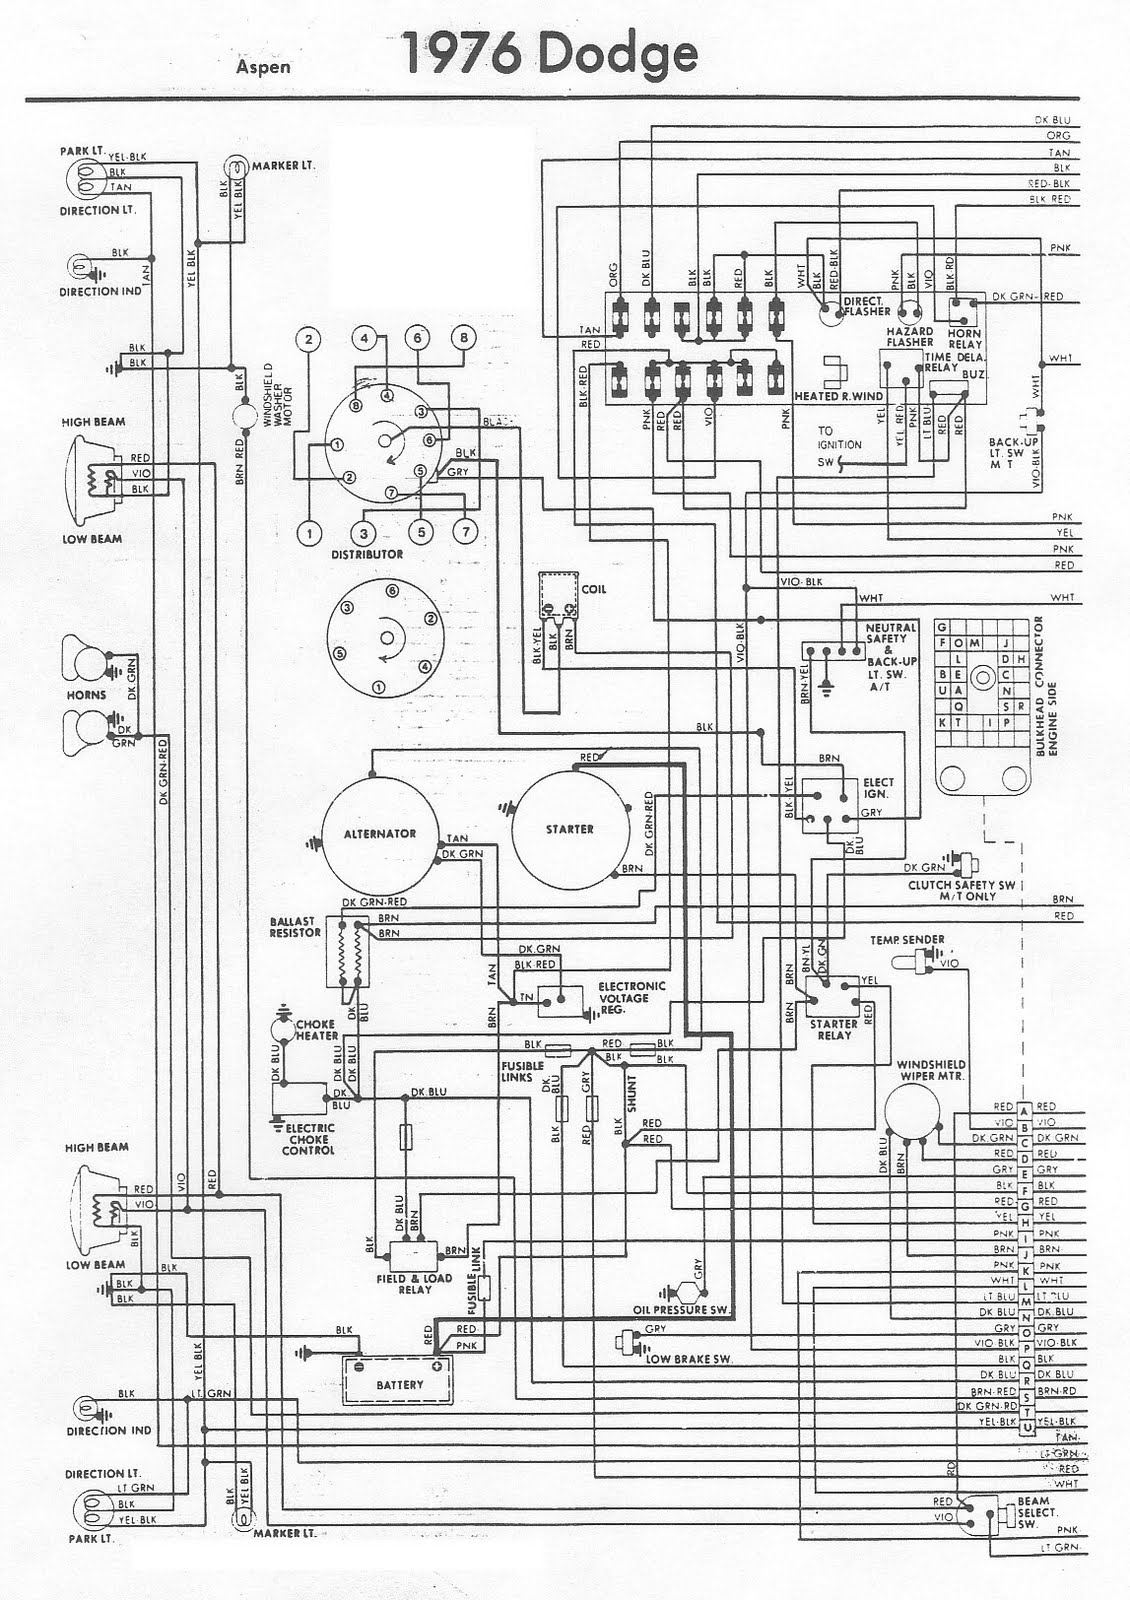 1976 Dodge Sportsman Wiring Diagram - Electrical Work Wiring Diagram •